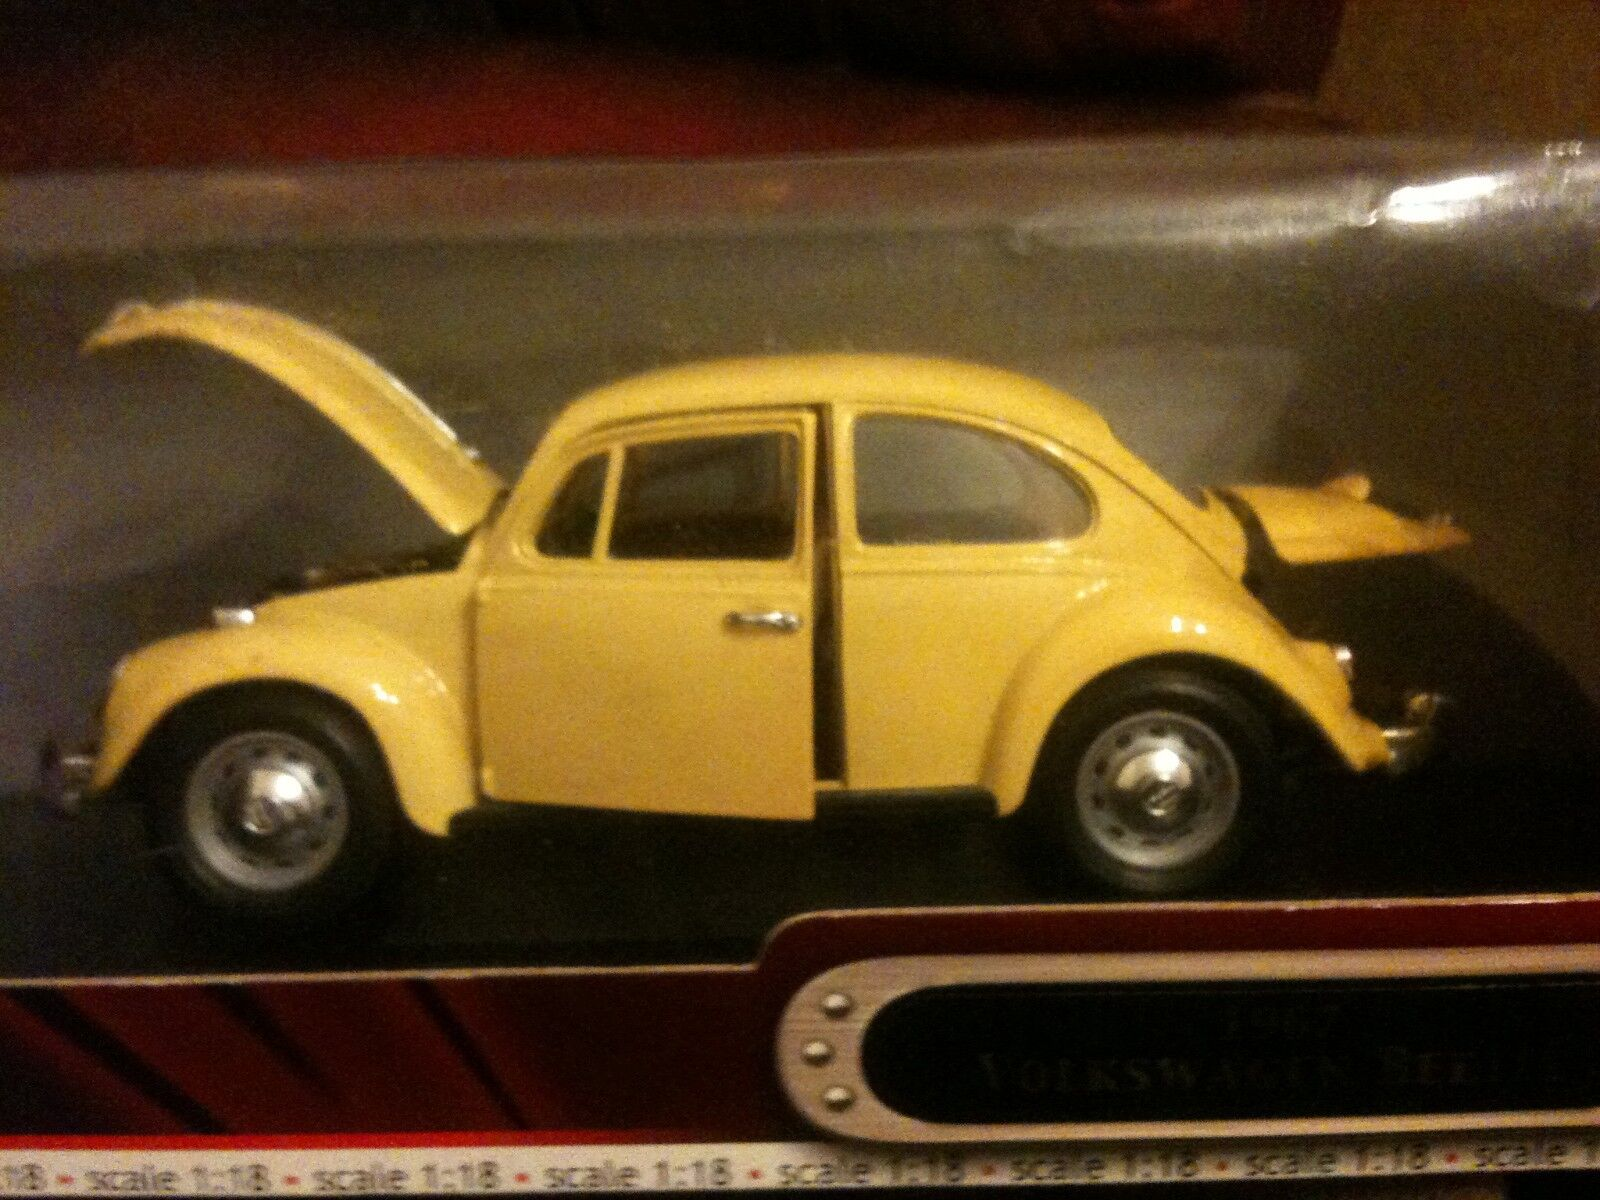 1967 VOLKSWAGEN BEETLE CAR DIE CAST METAL DELUXE EDITION QUALITY HAND MADE